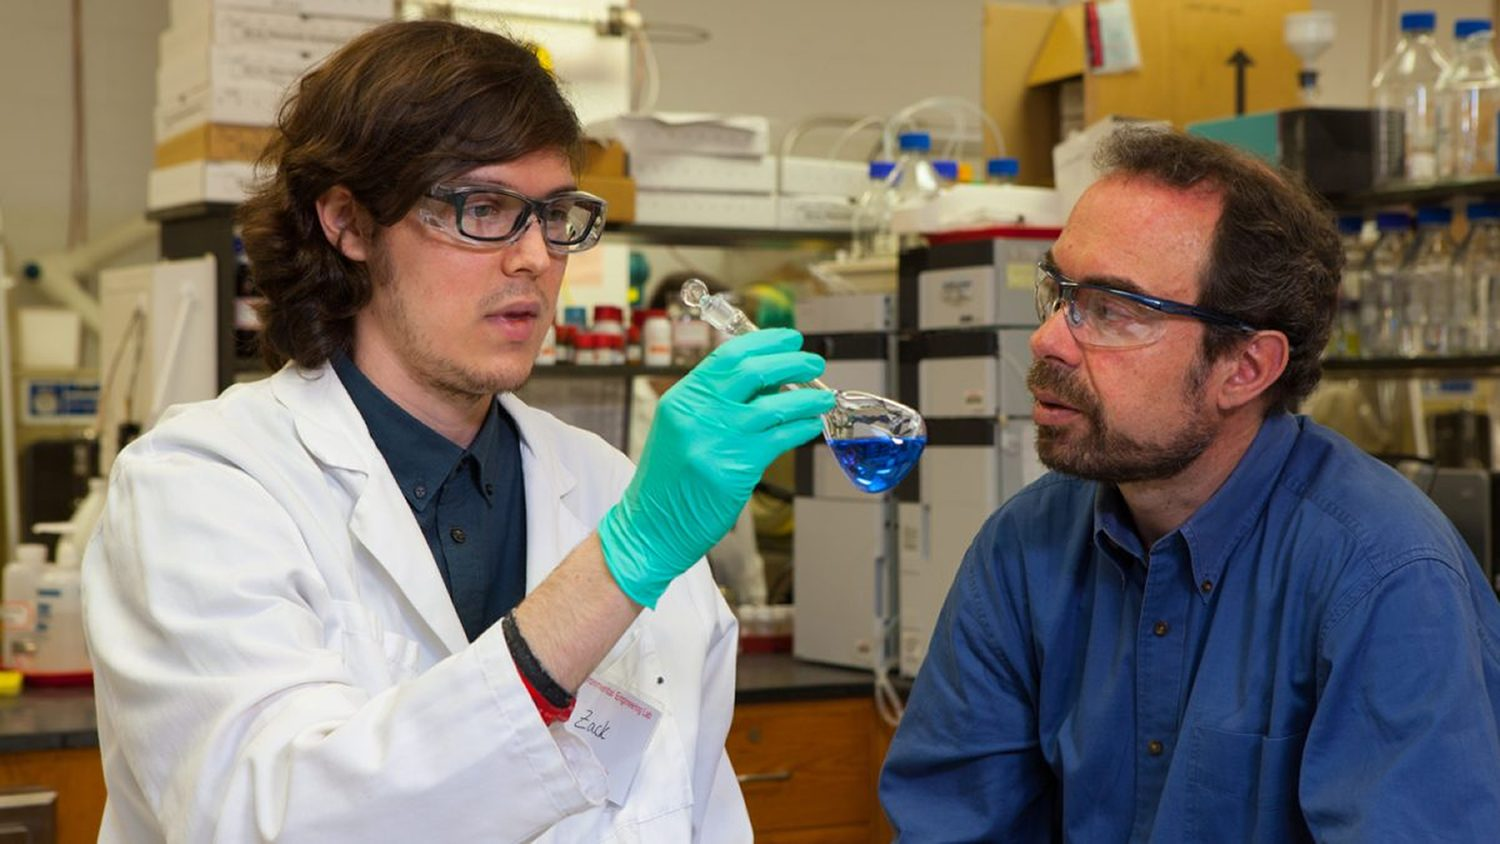 Graduate student Zachary Hopkins, left, and Dr. Detlef Knappe work together in the environmental lab at the Department of Civil, Construction, and Environmental Engineering